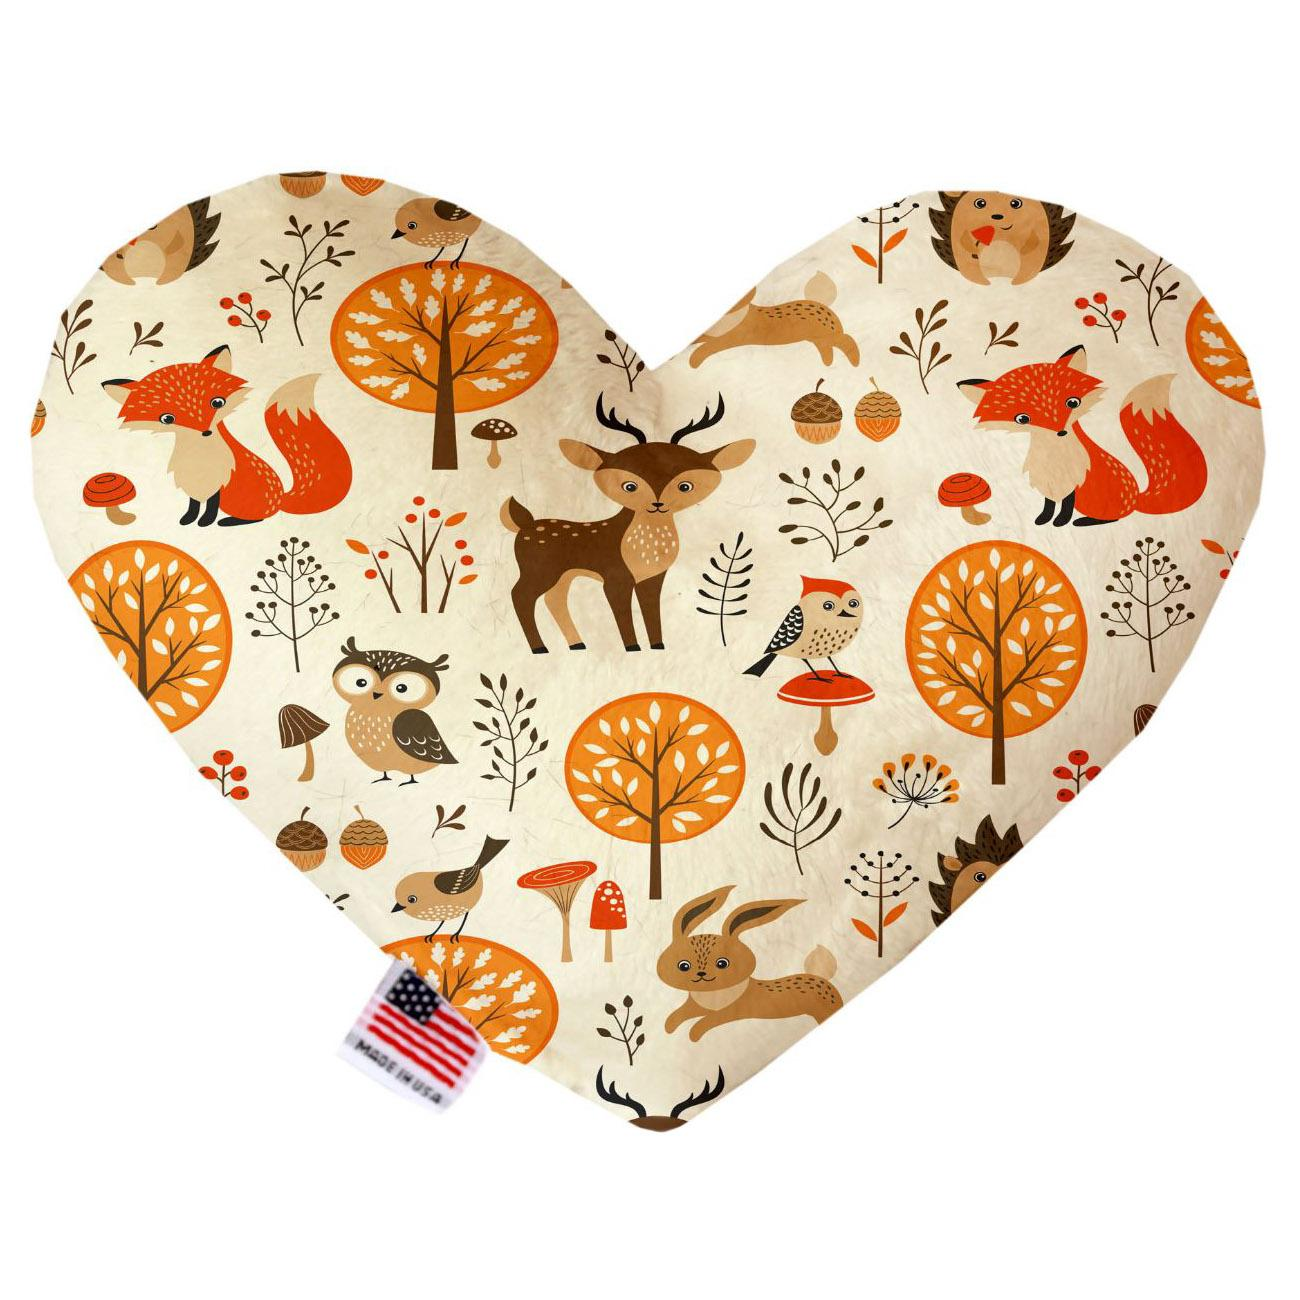 Heart Dog Toy - Fox and Friends